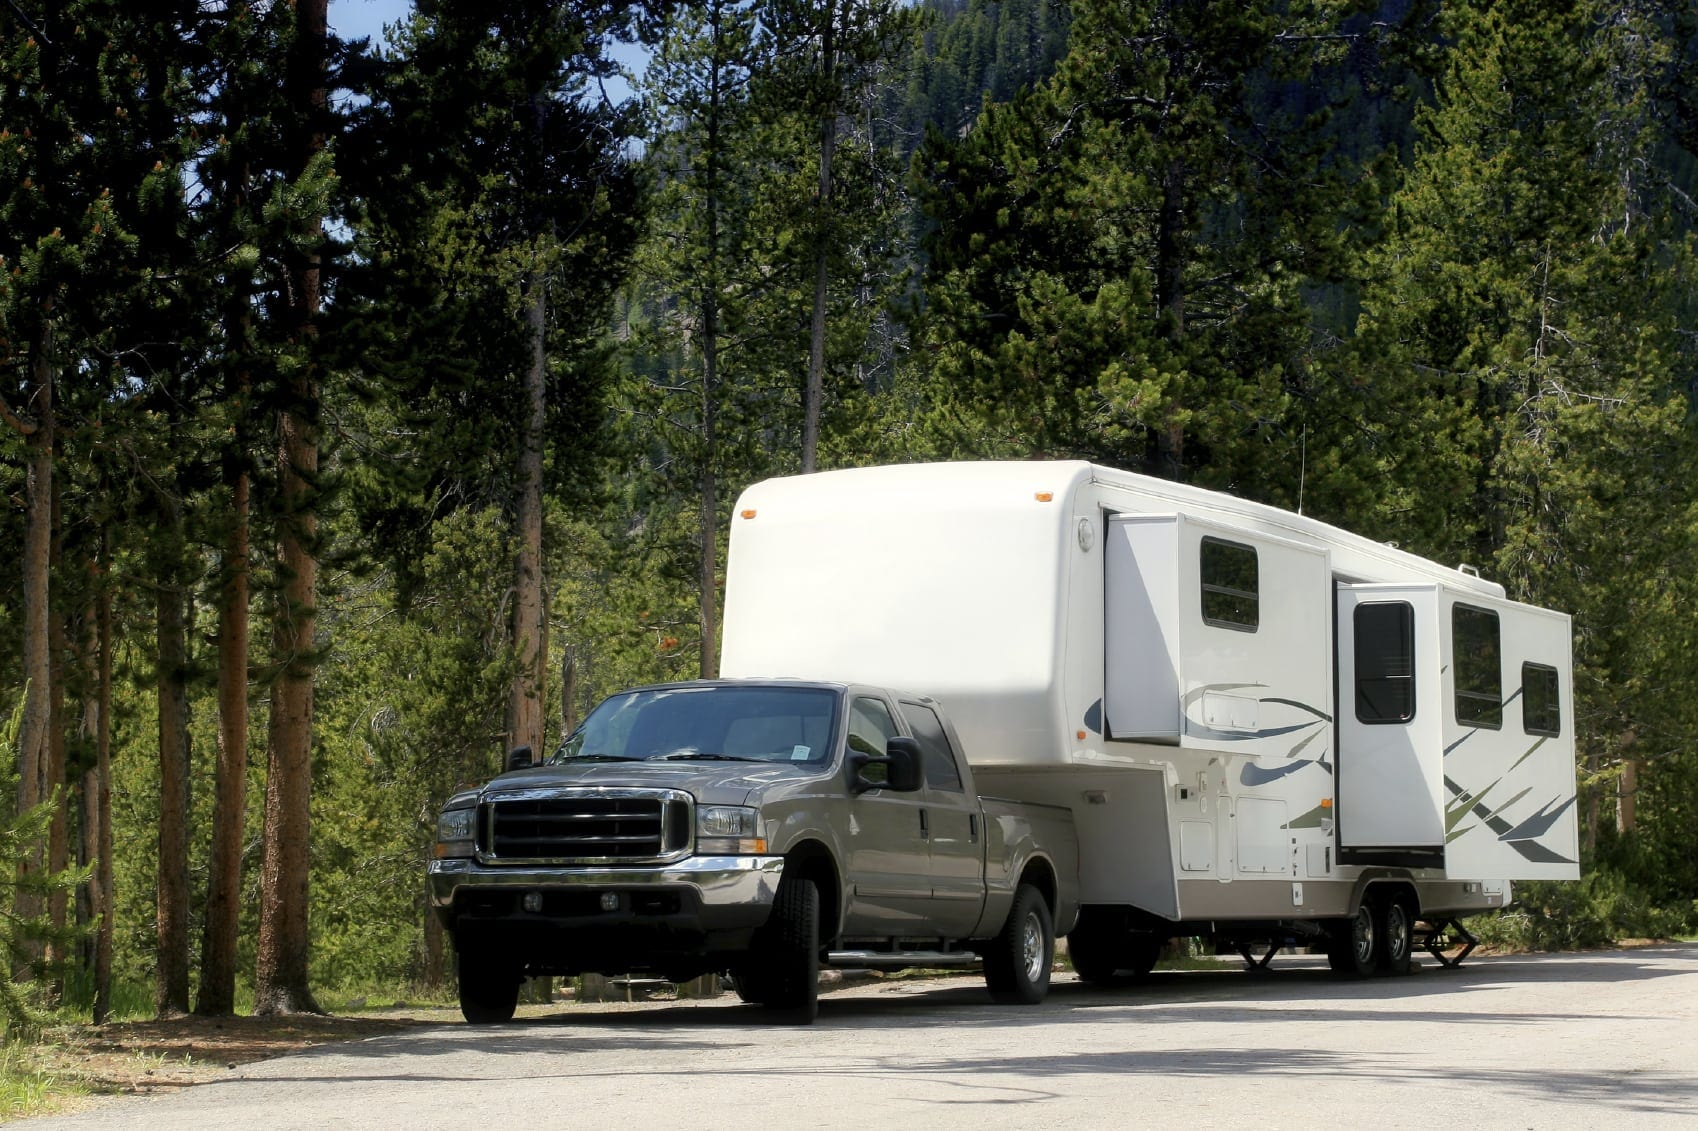 Pickup Truck Pulling An RV Trailer Stock Photo